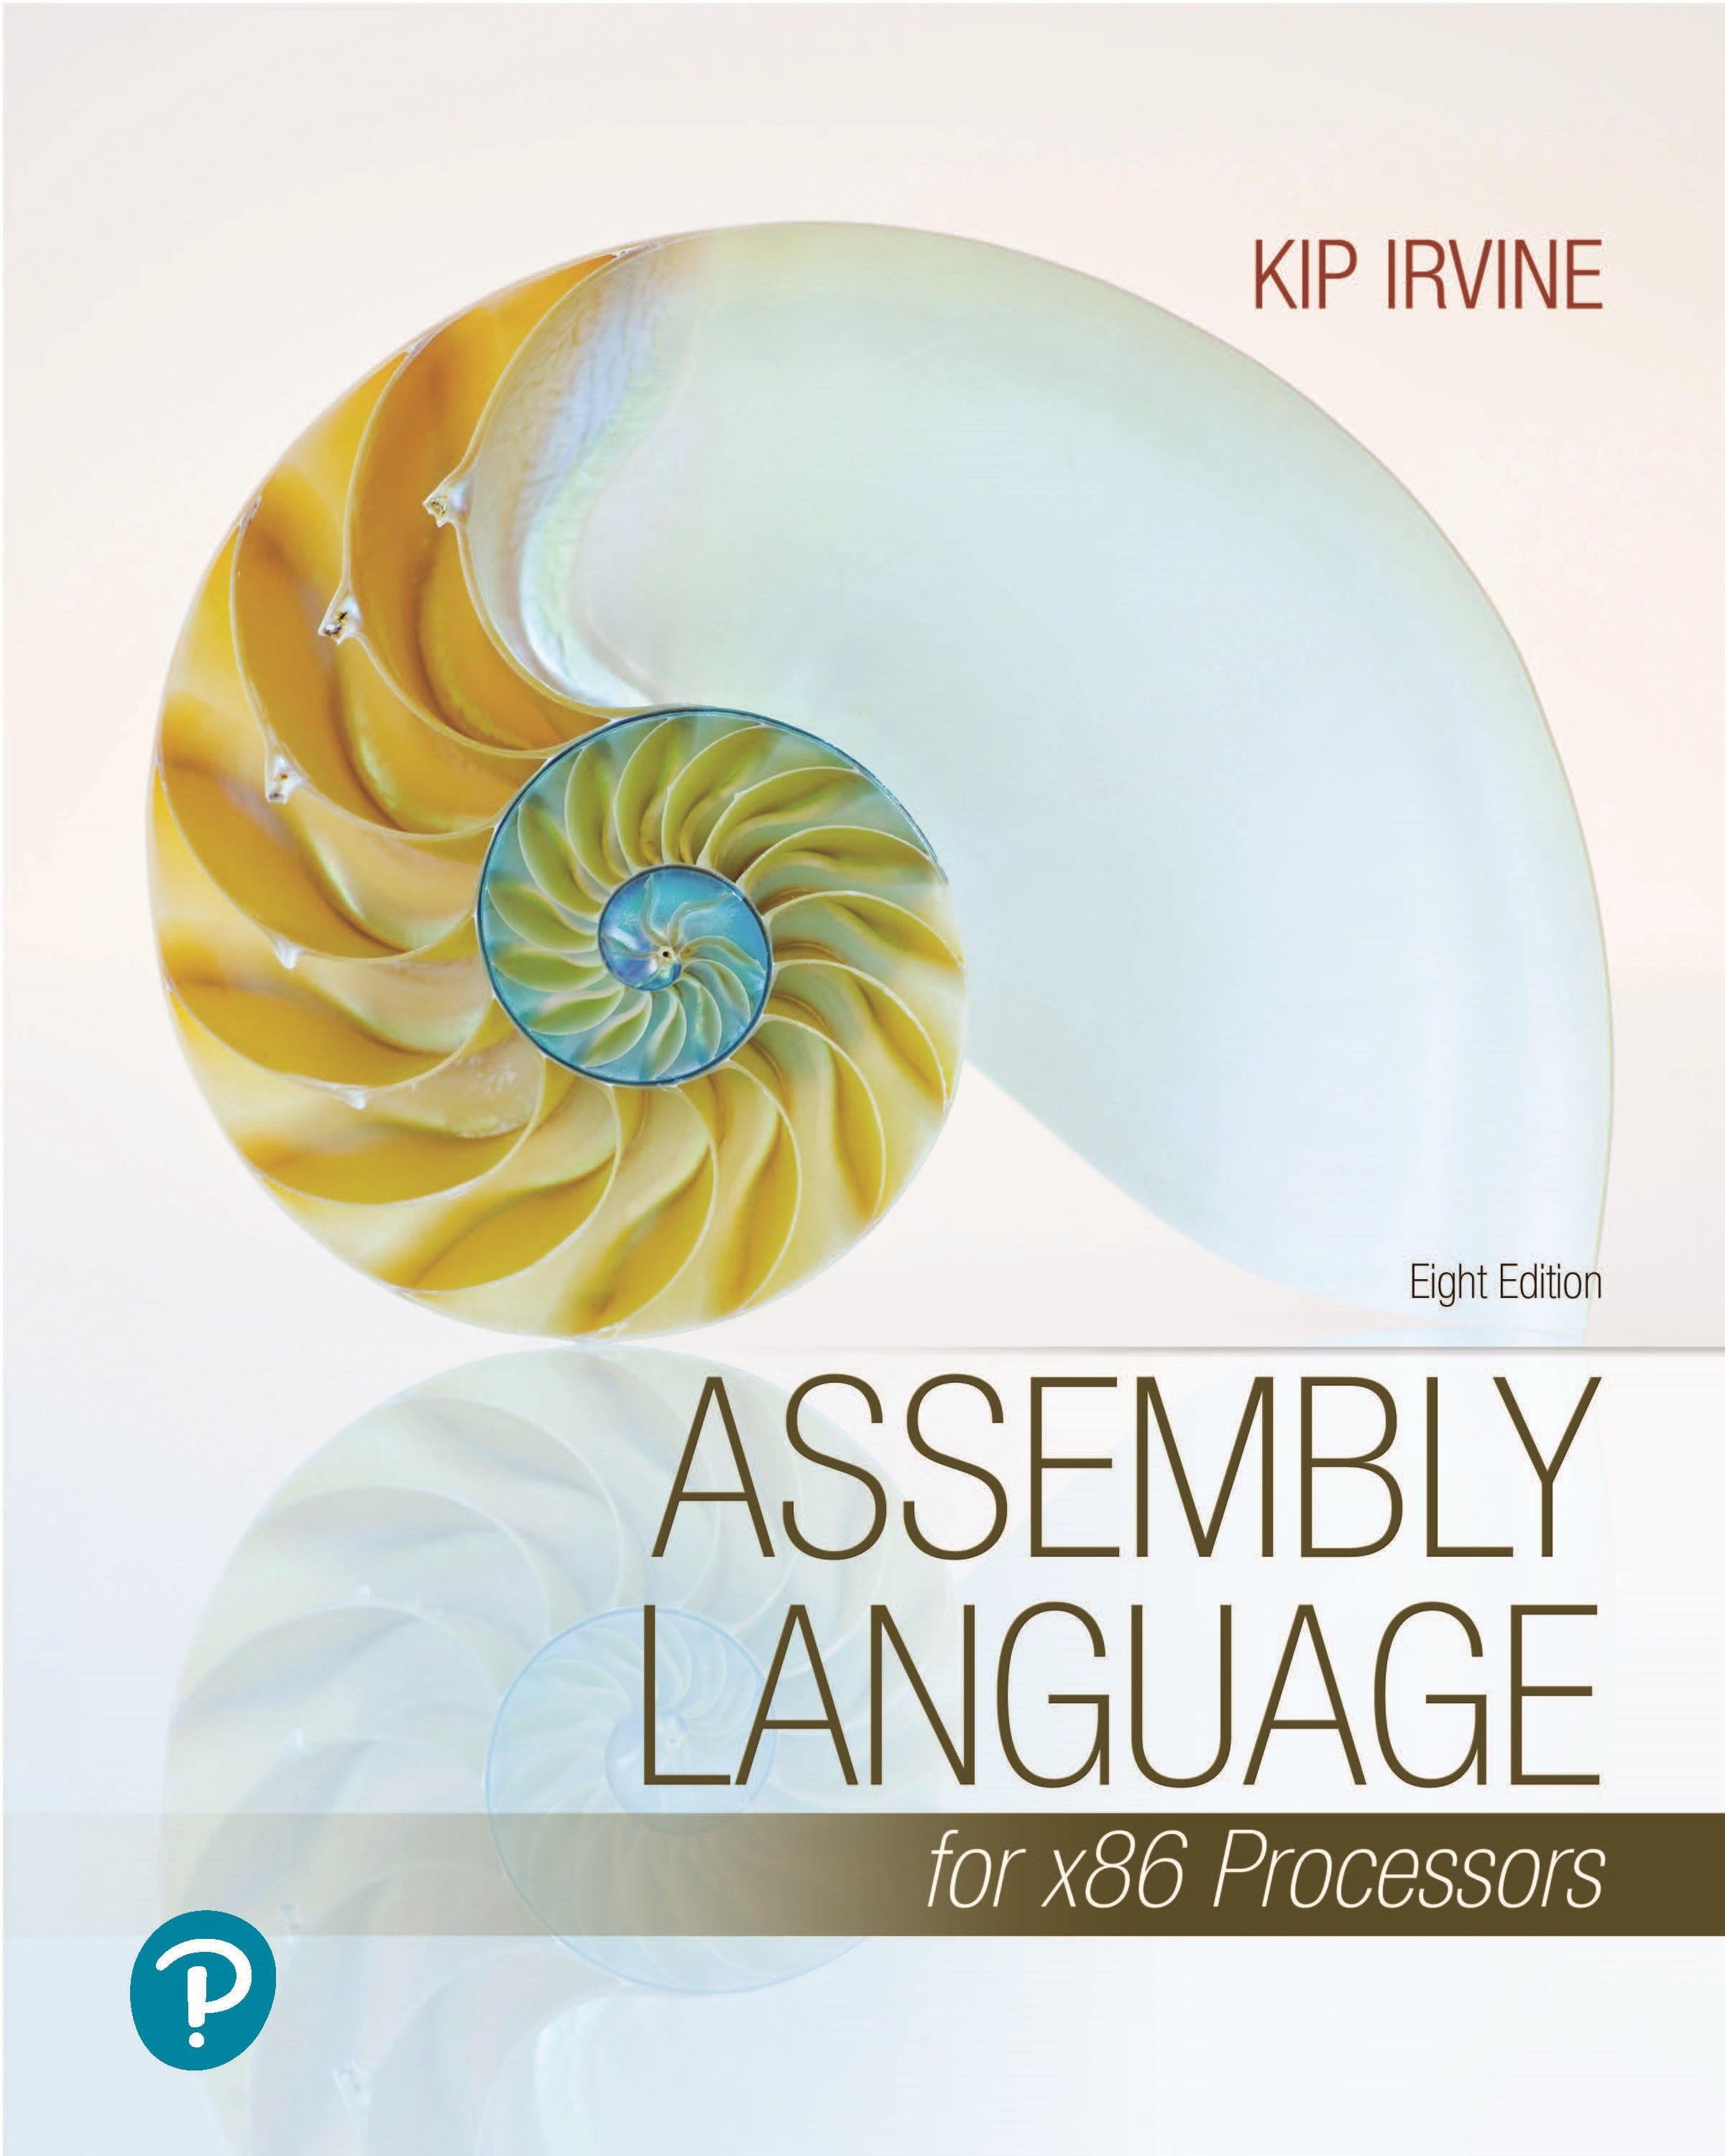 Assembly Language for x86 Processors (Print-on-Demand), 8th Edition